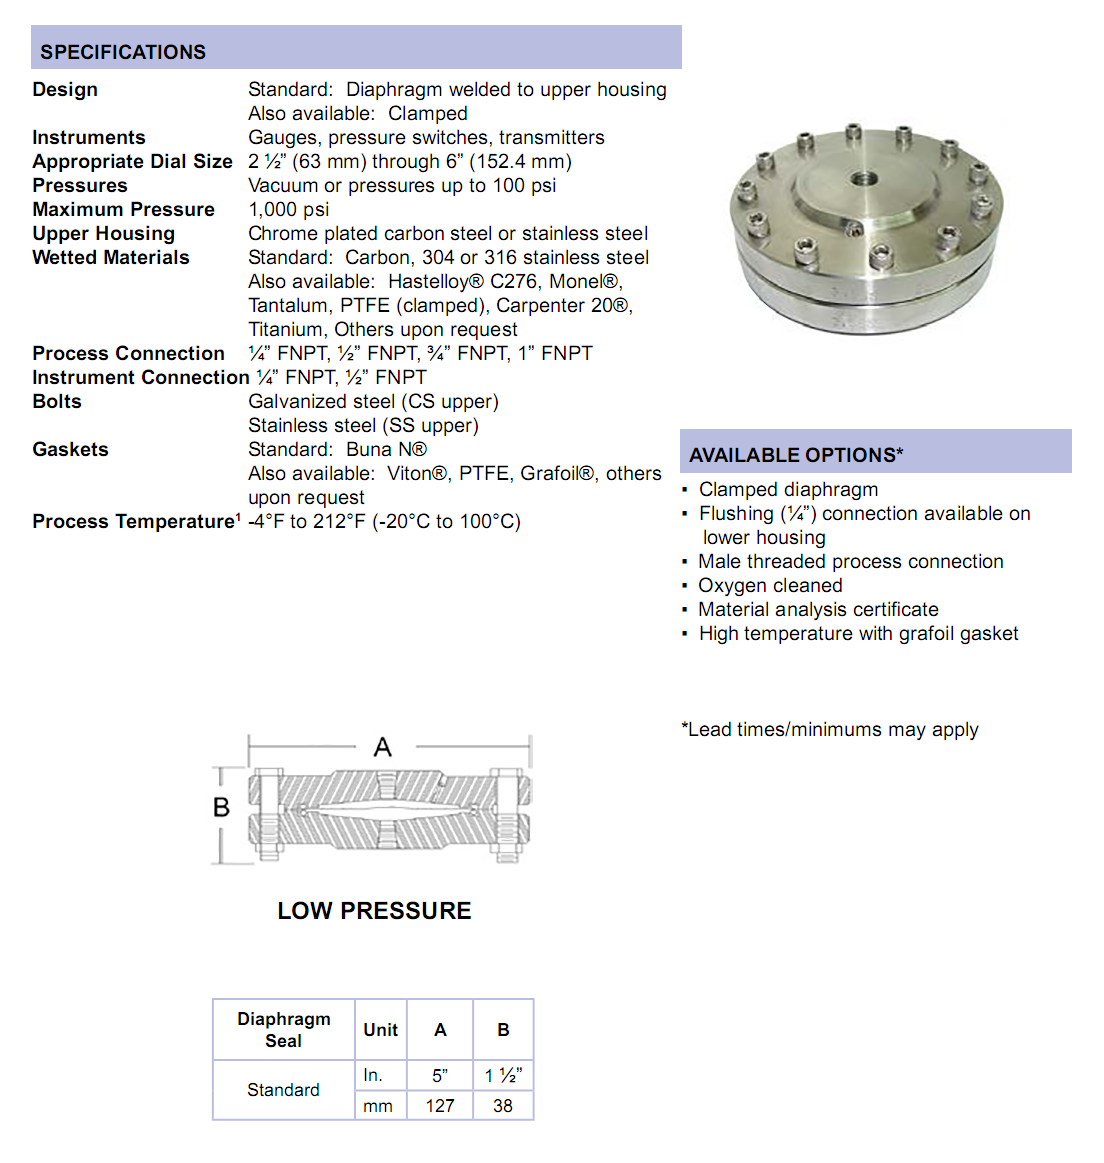 threaded-low-pressure-diaphragm-seal-specifications